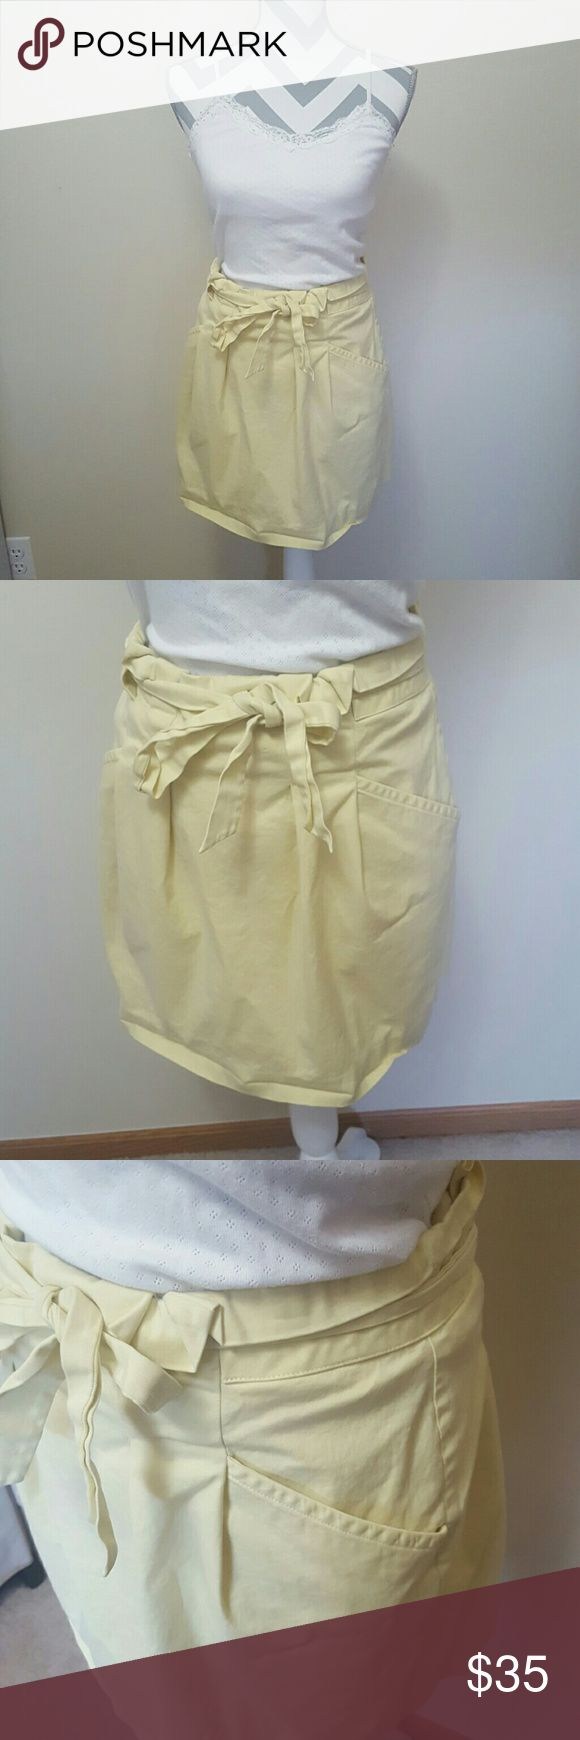 """BCBG Maxazria Yellow Tulip Paperbag Skirt Price Reduced! BCBG Maxazria brand in a size 8. This is a gorgeous pleated skirt for the warmer months. The skirt is a high waisted """"paperbag"""" style and includes a matching belt and pockets! Smoke free home and fast shipping. Thank you for checking out my closet BCBGMaxAzria Skirts"""